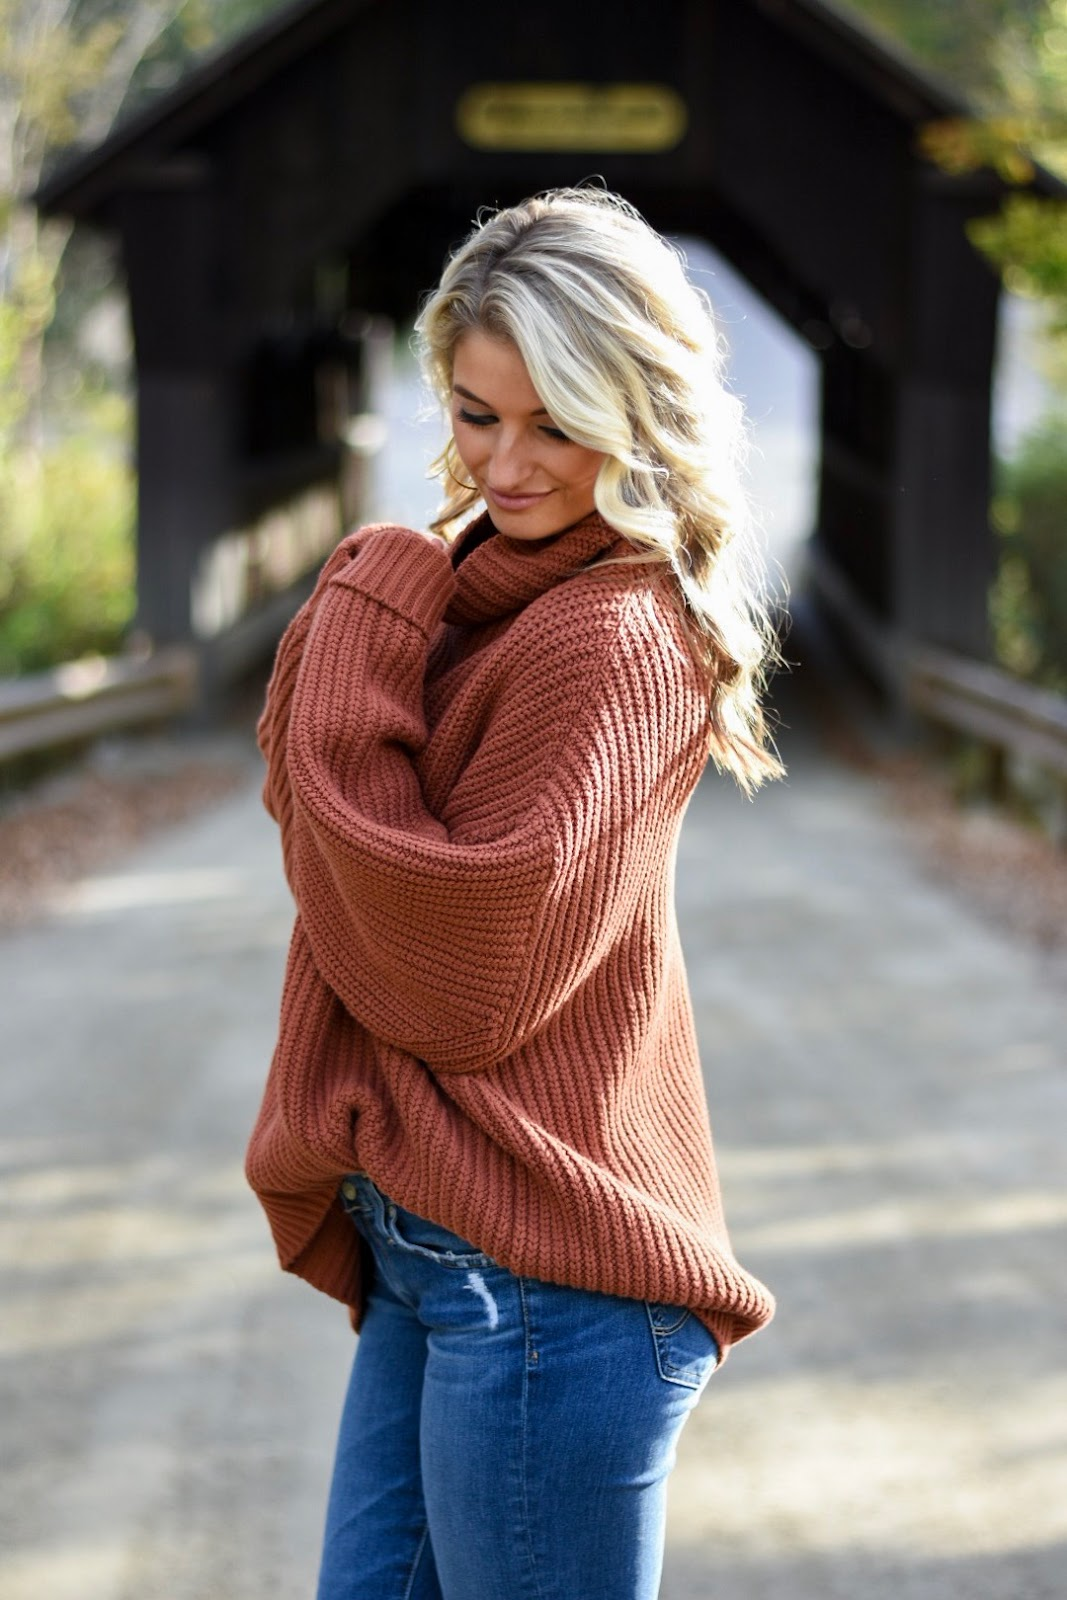 The Cheeky Been Free People Oversized Sweater In Vermont